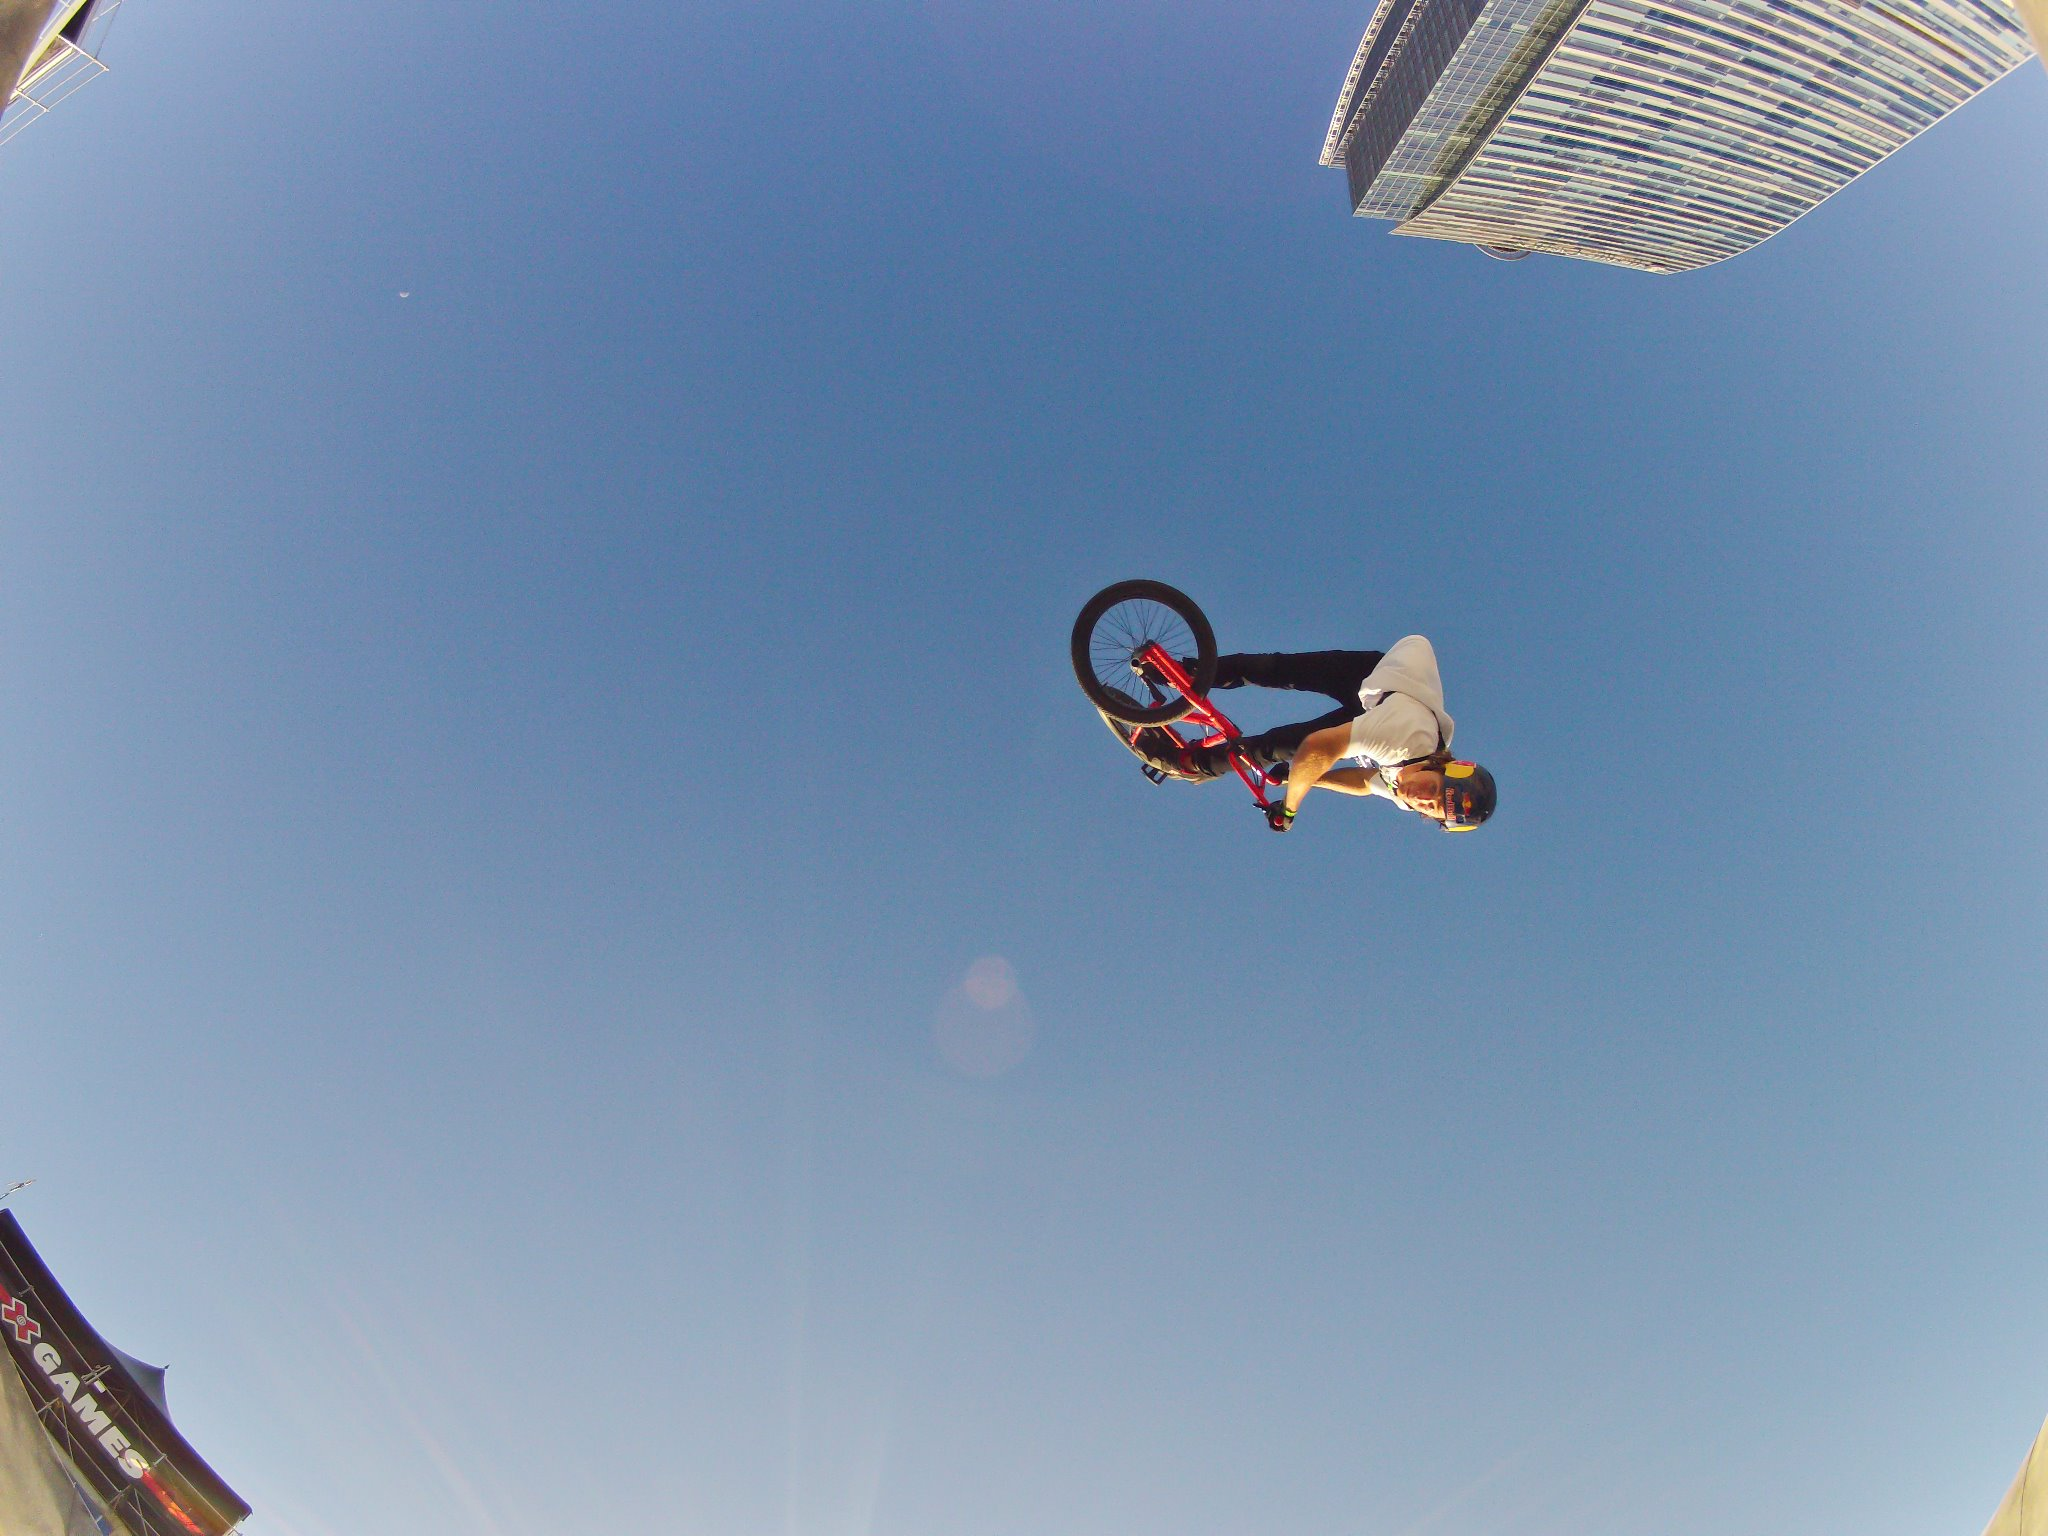 BMX BMX rider Drew Bezanson soars through the sky.